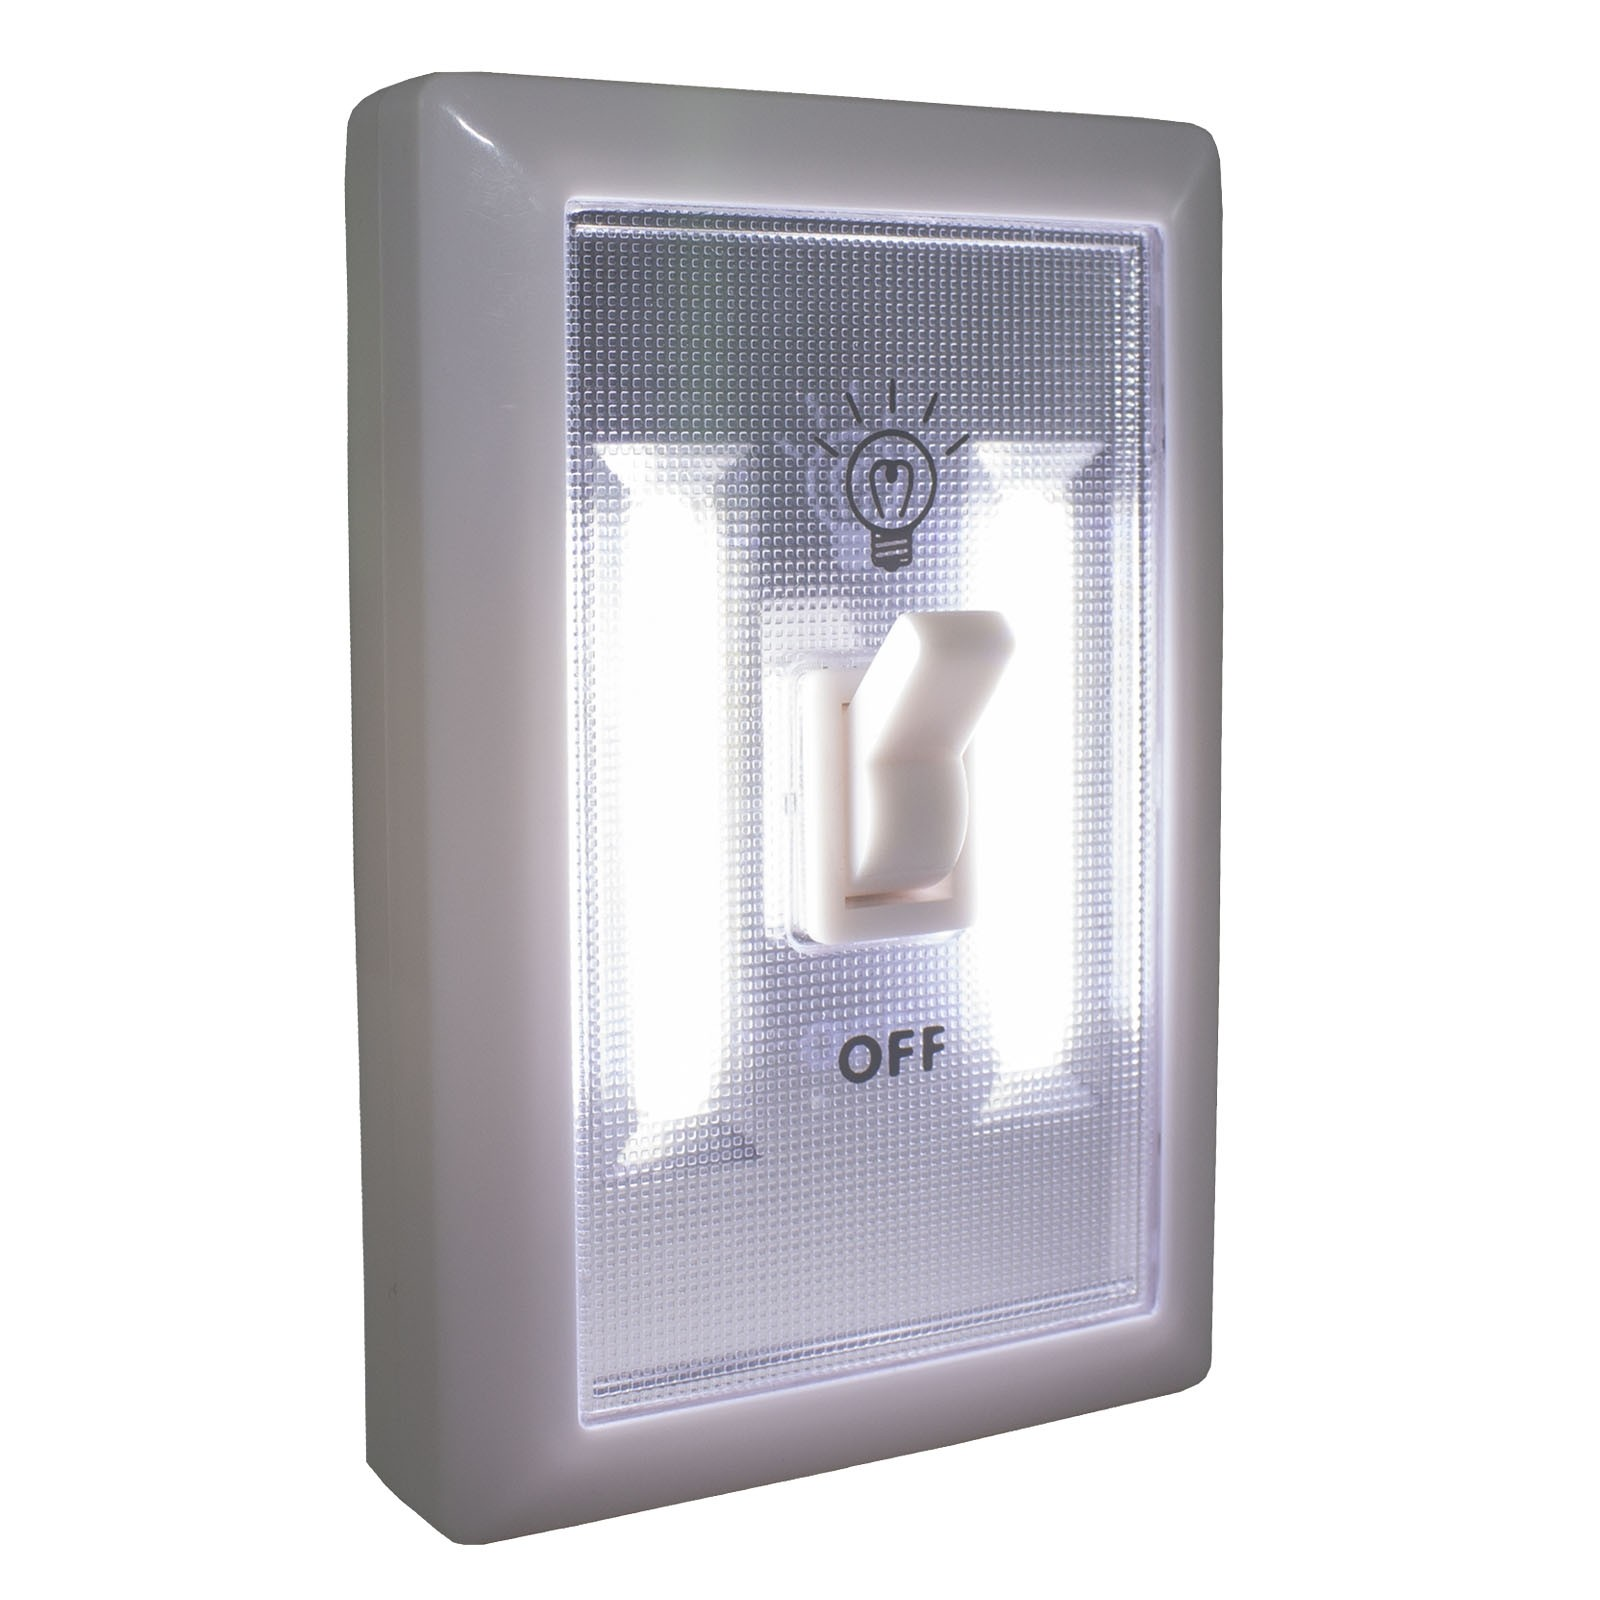 1600x1600 Brt Imp6512, Flipit Magnetic Led Light Switch